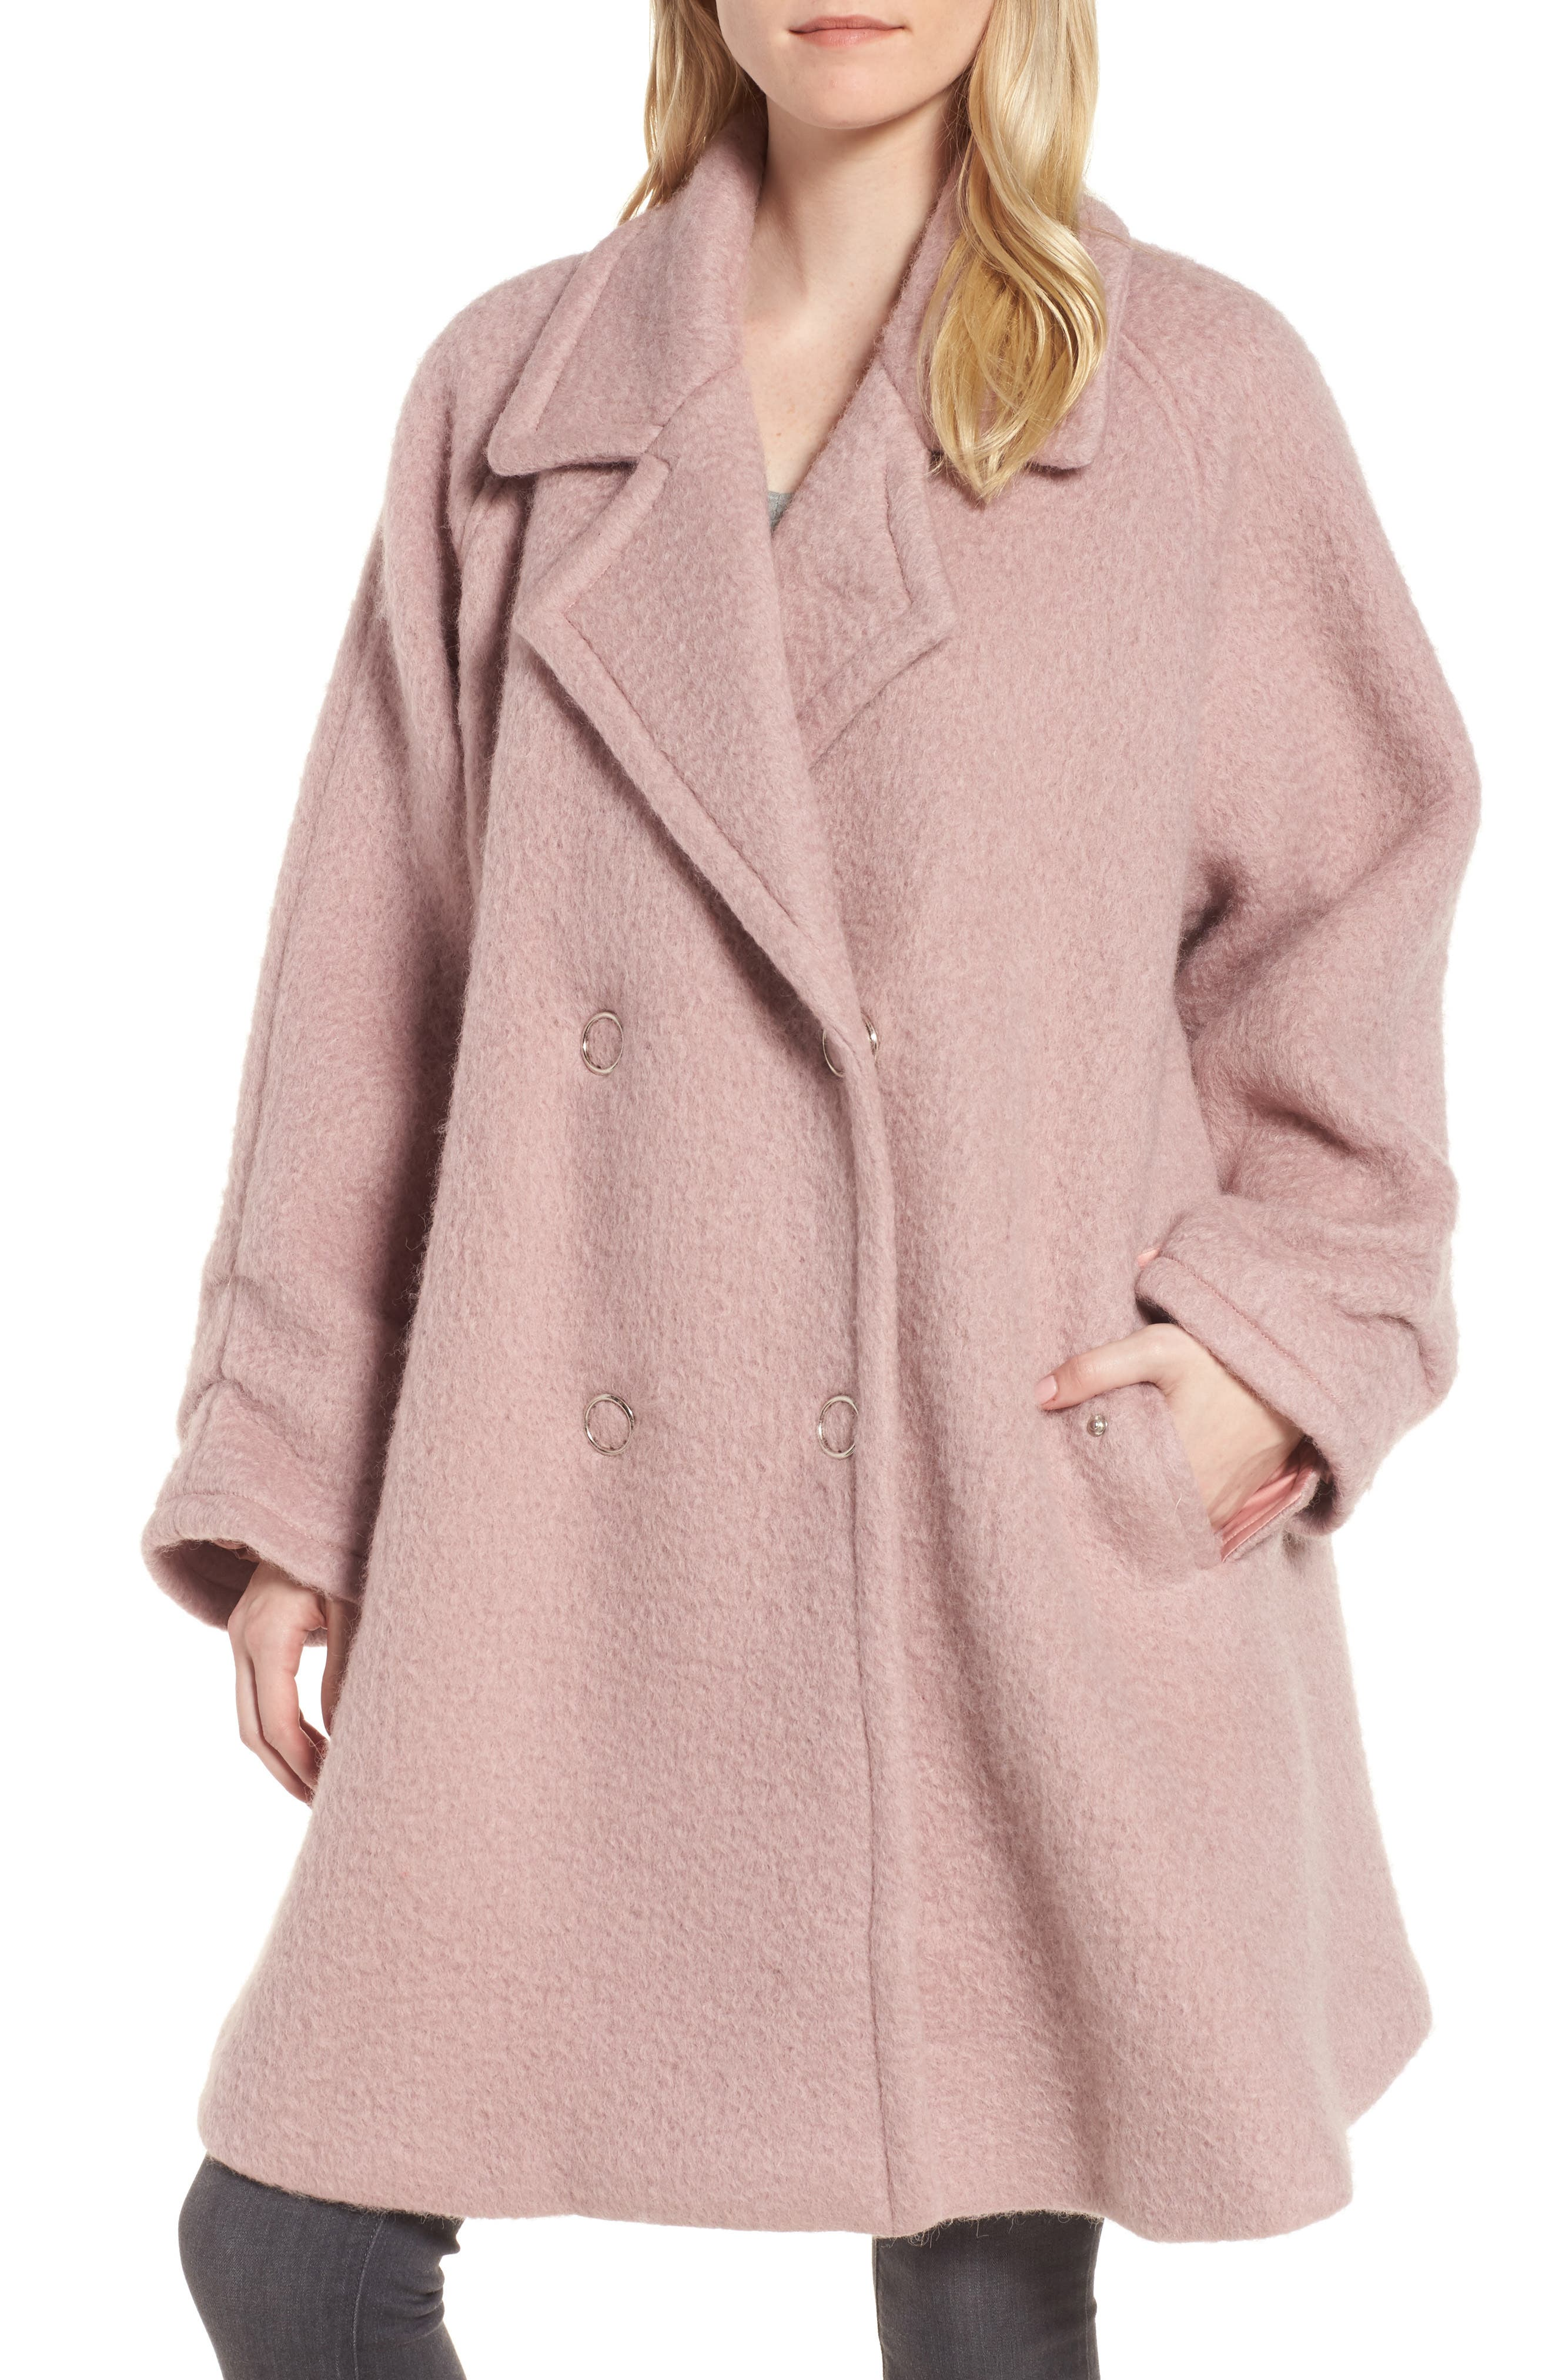 Swing Coat,                         Main,                         color, Light Pink